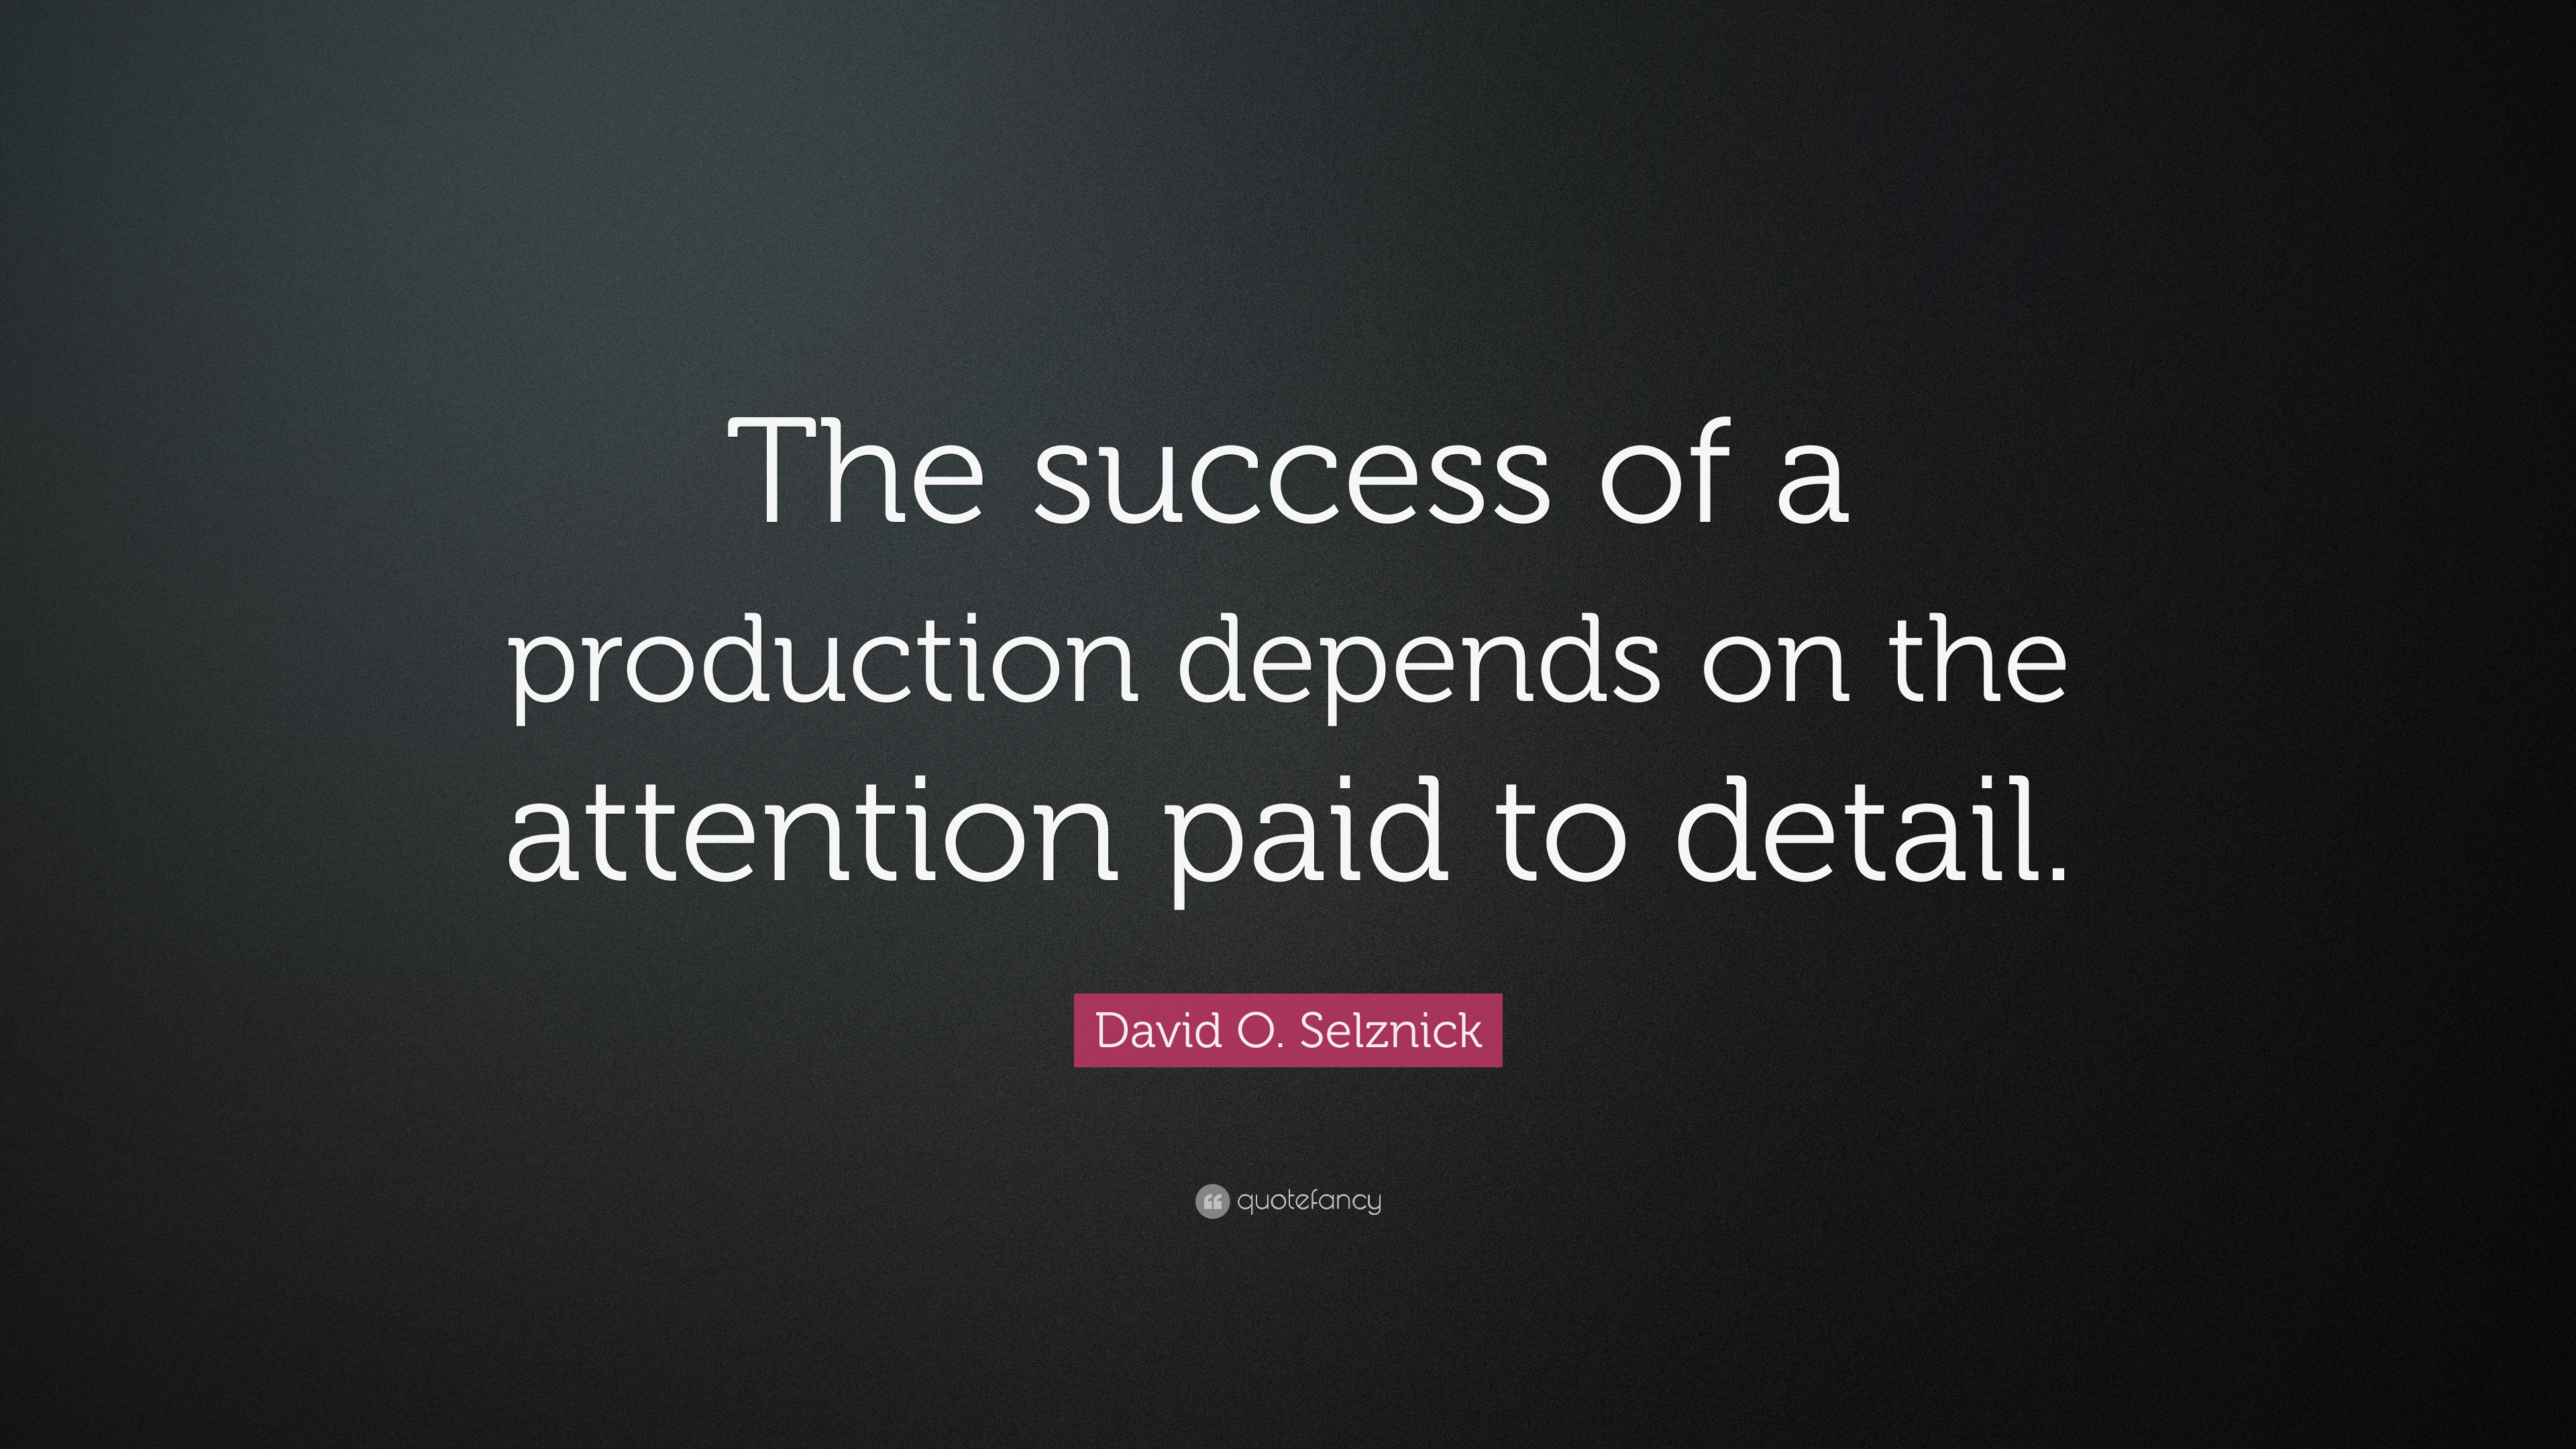 David O Selznick Quote The Success Of A Production Depends On The